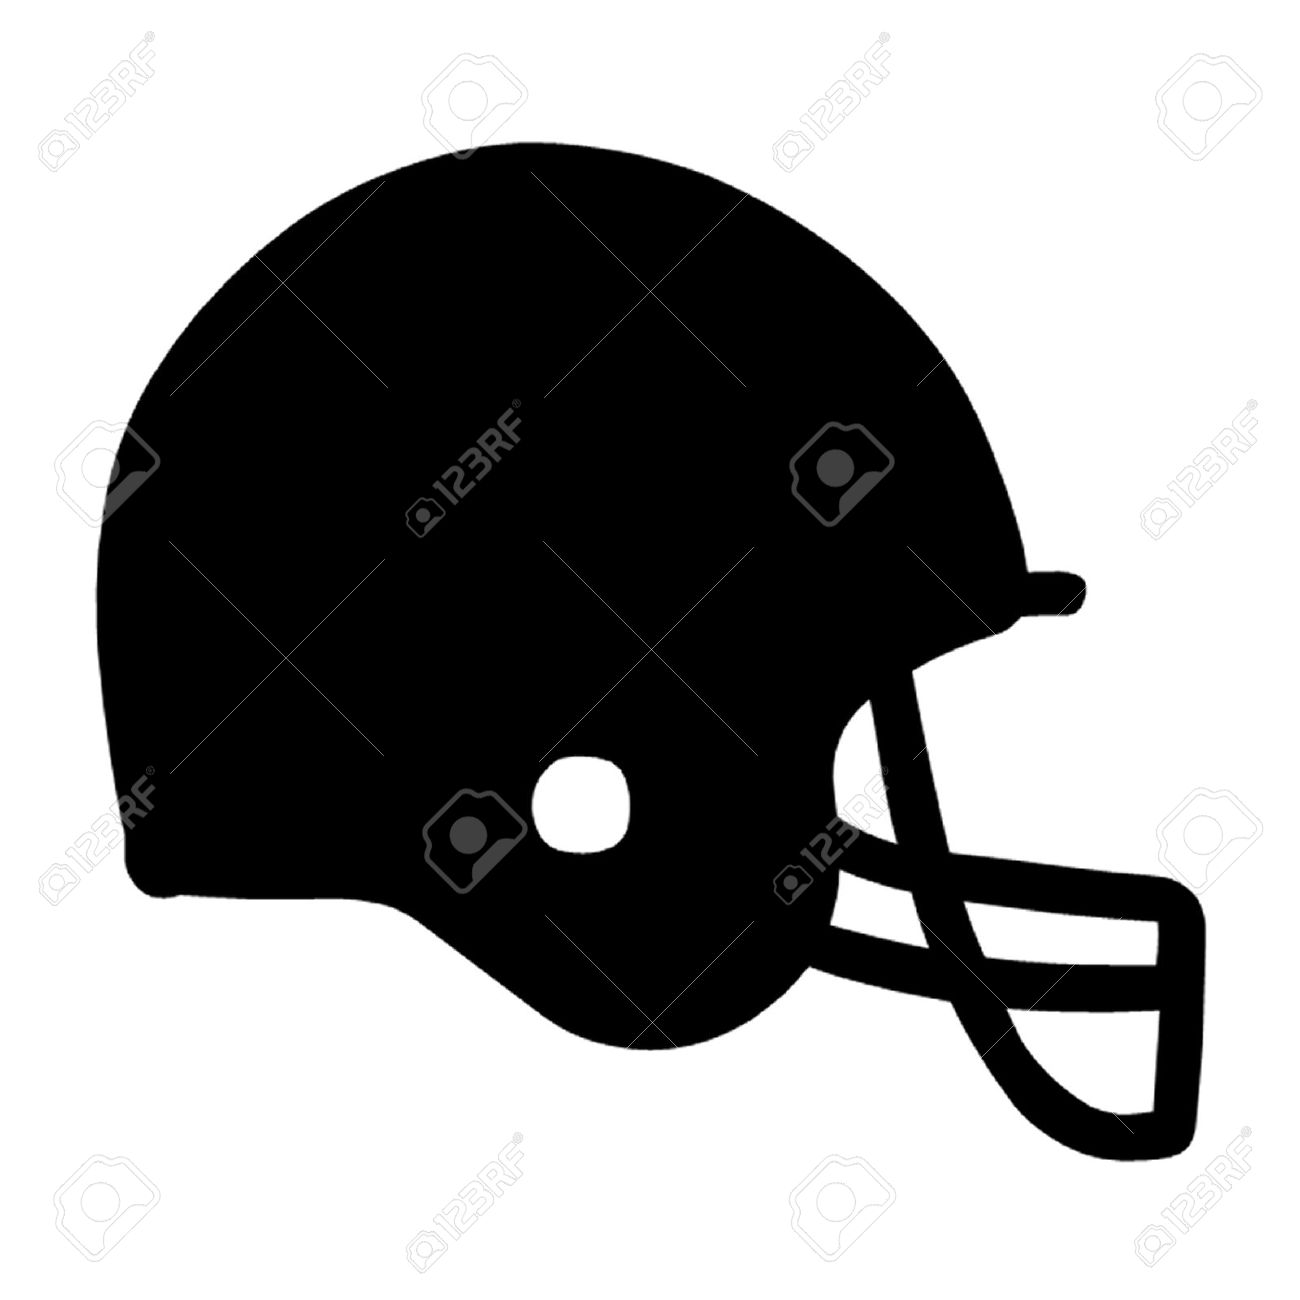 12,660 Football Helmet Cliparts, Stock Vector And Royalty Free.